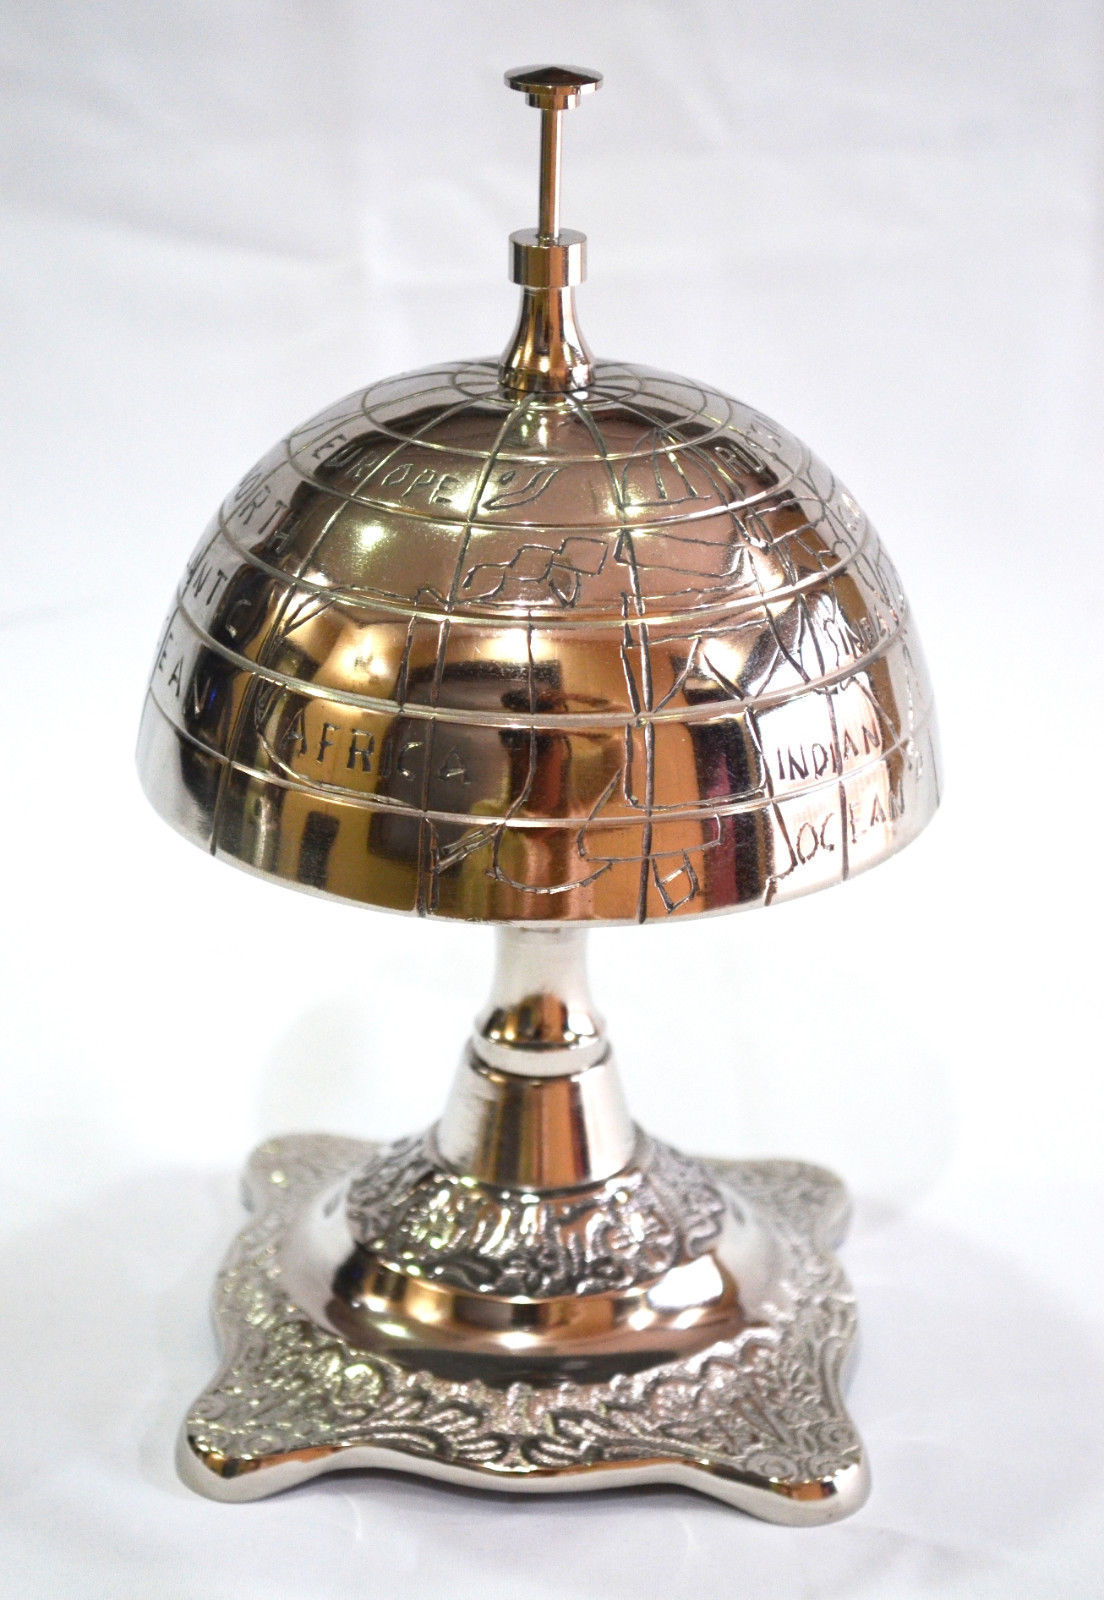 Solid Globe Hotel Counter Desk Bell Antique Style Ring For Service Ding Bells